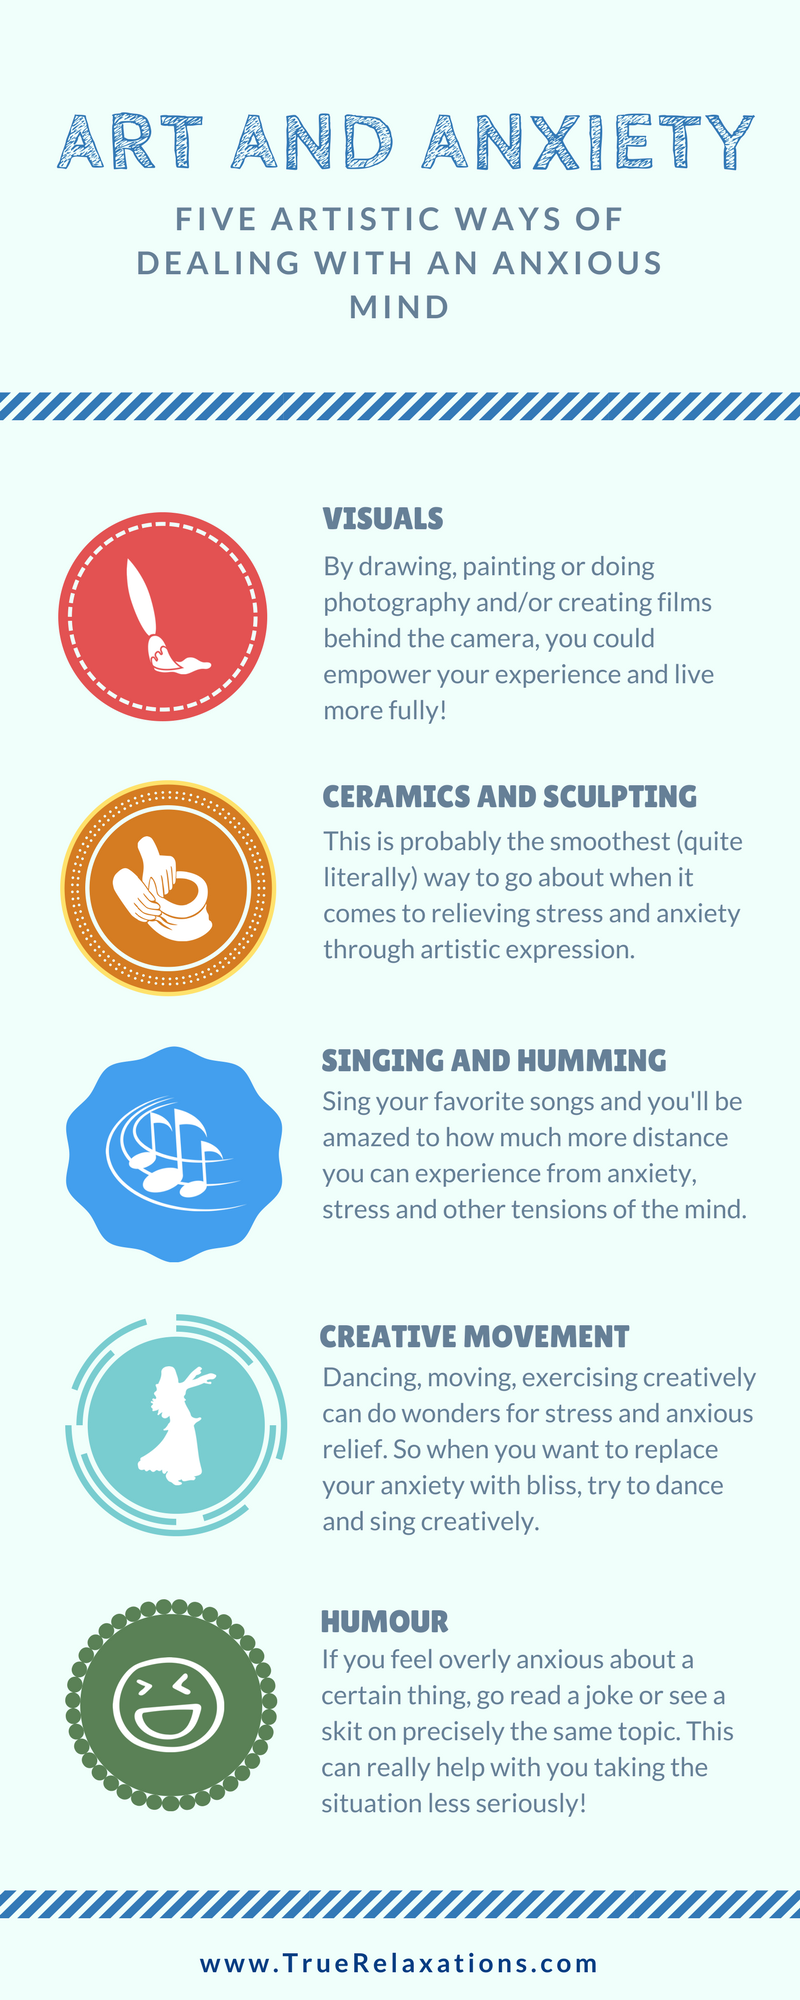 Five Artistic Ways of Dealing with an Anxious Mind